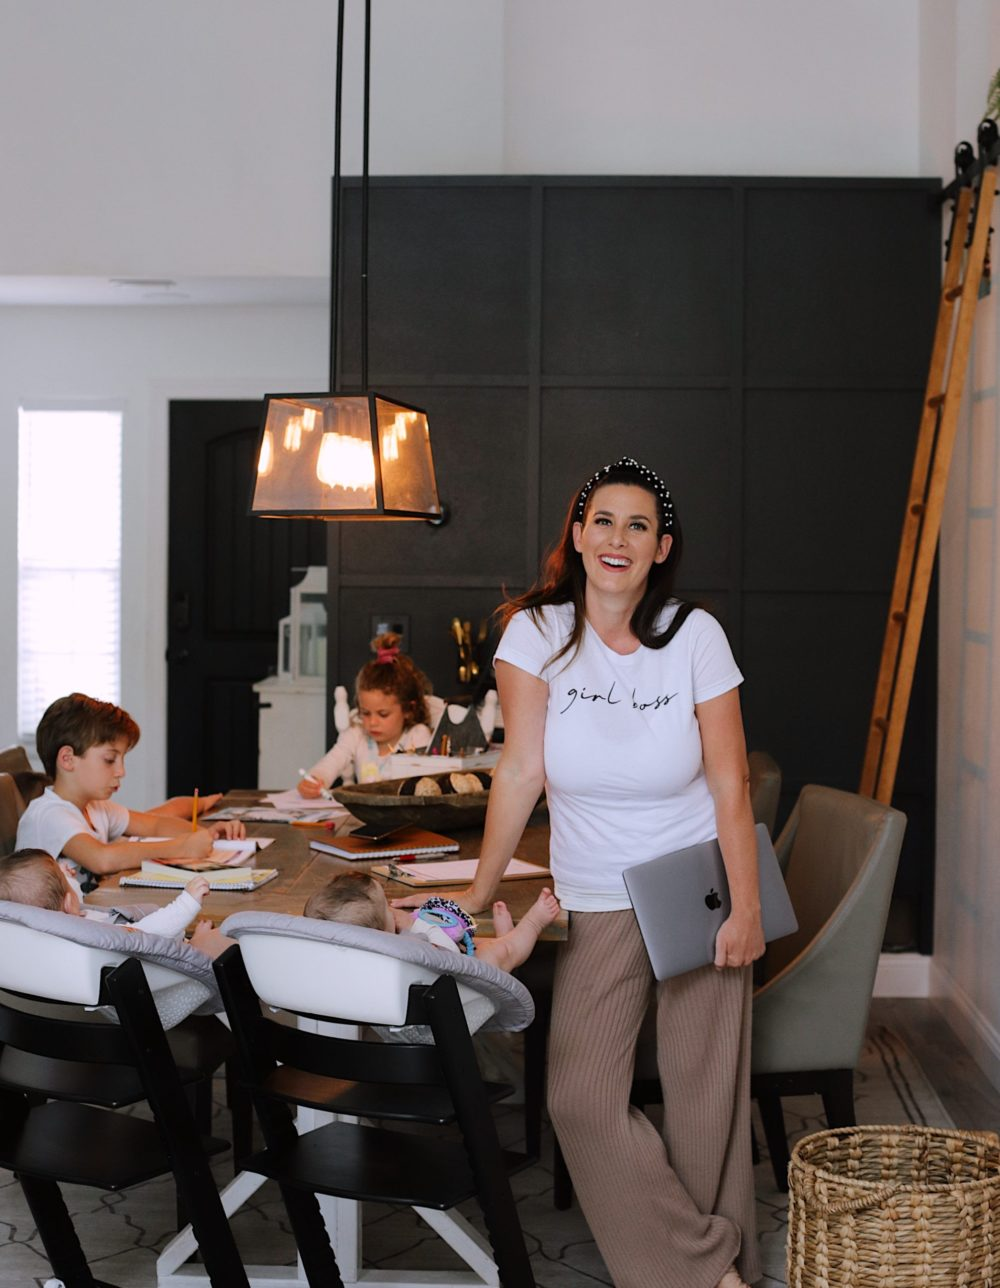 How to Survive Working With Kids at Home - Tips for making the most of working from home with kids homeschooling. Click through for tips from lifestyle blogger Tabitha Blue of Fresh Mommy Blog! | Working From Home With Kids by popular Florida lifestyle blog, Fresh Mommy Blog: image of a mom standing at the table with her kids as they do homeschooling work.